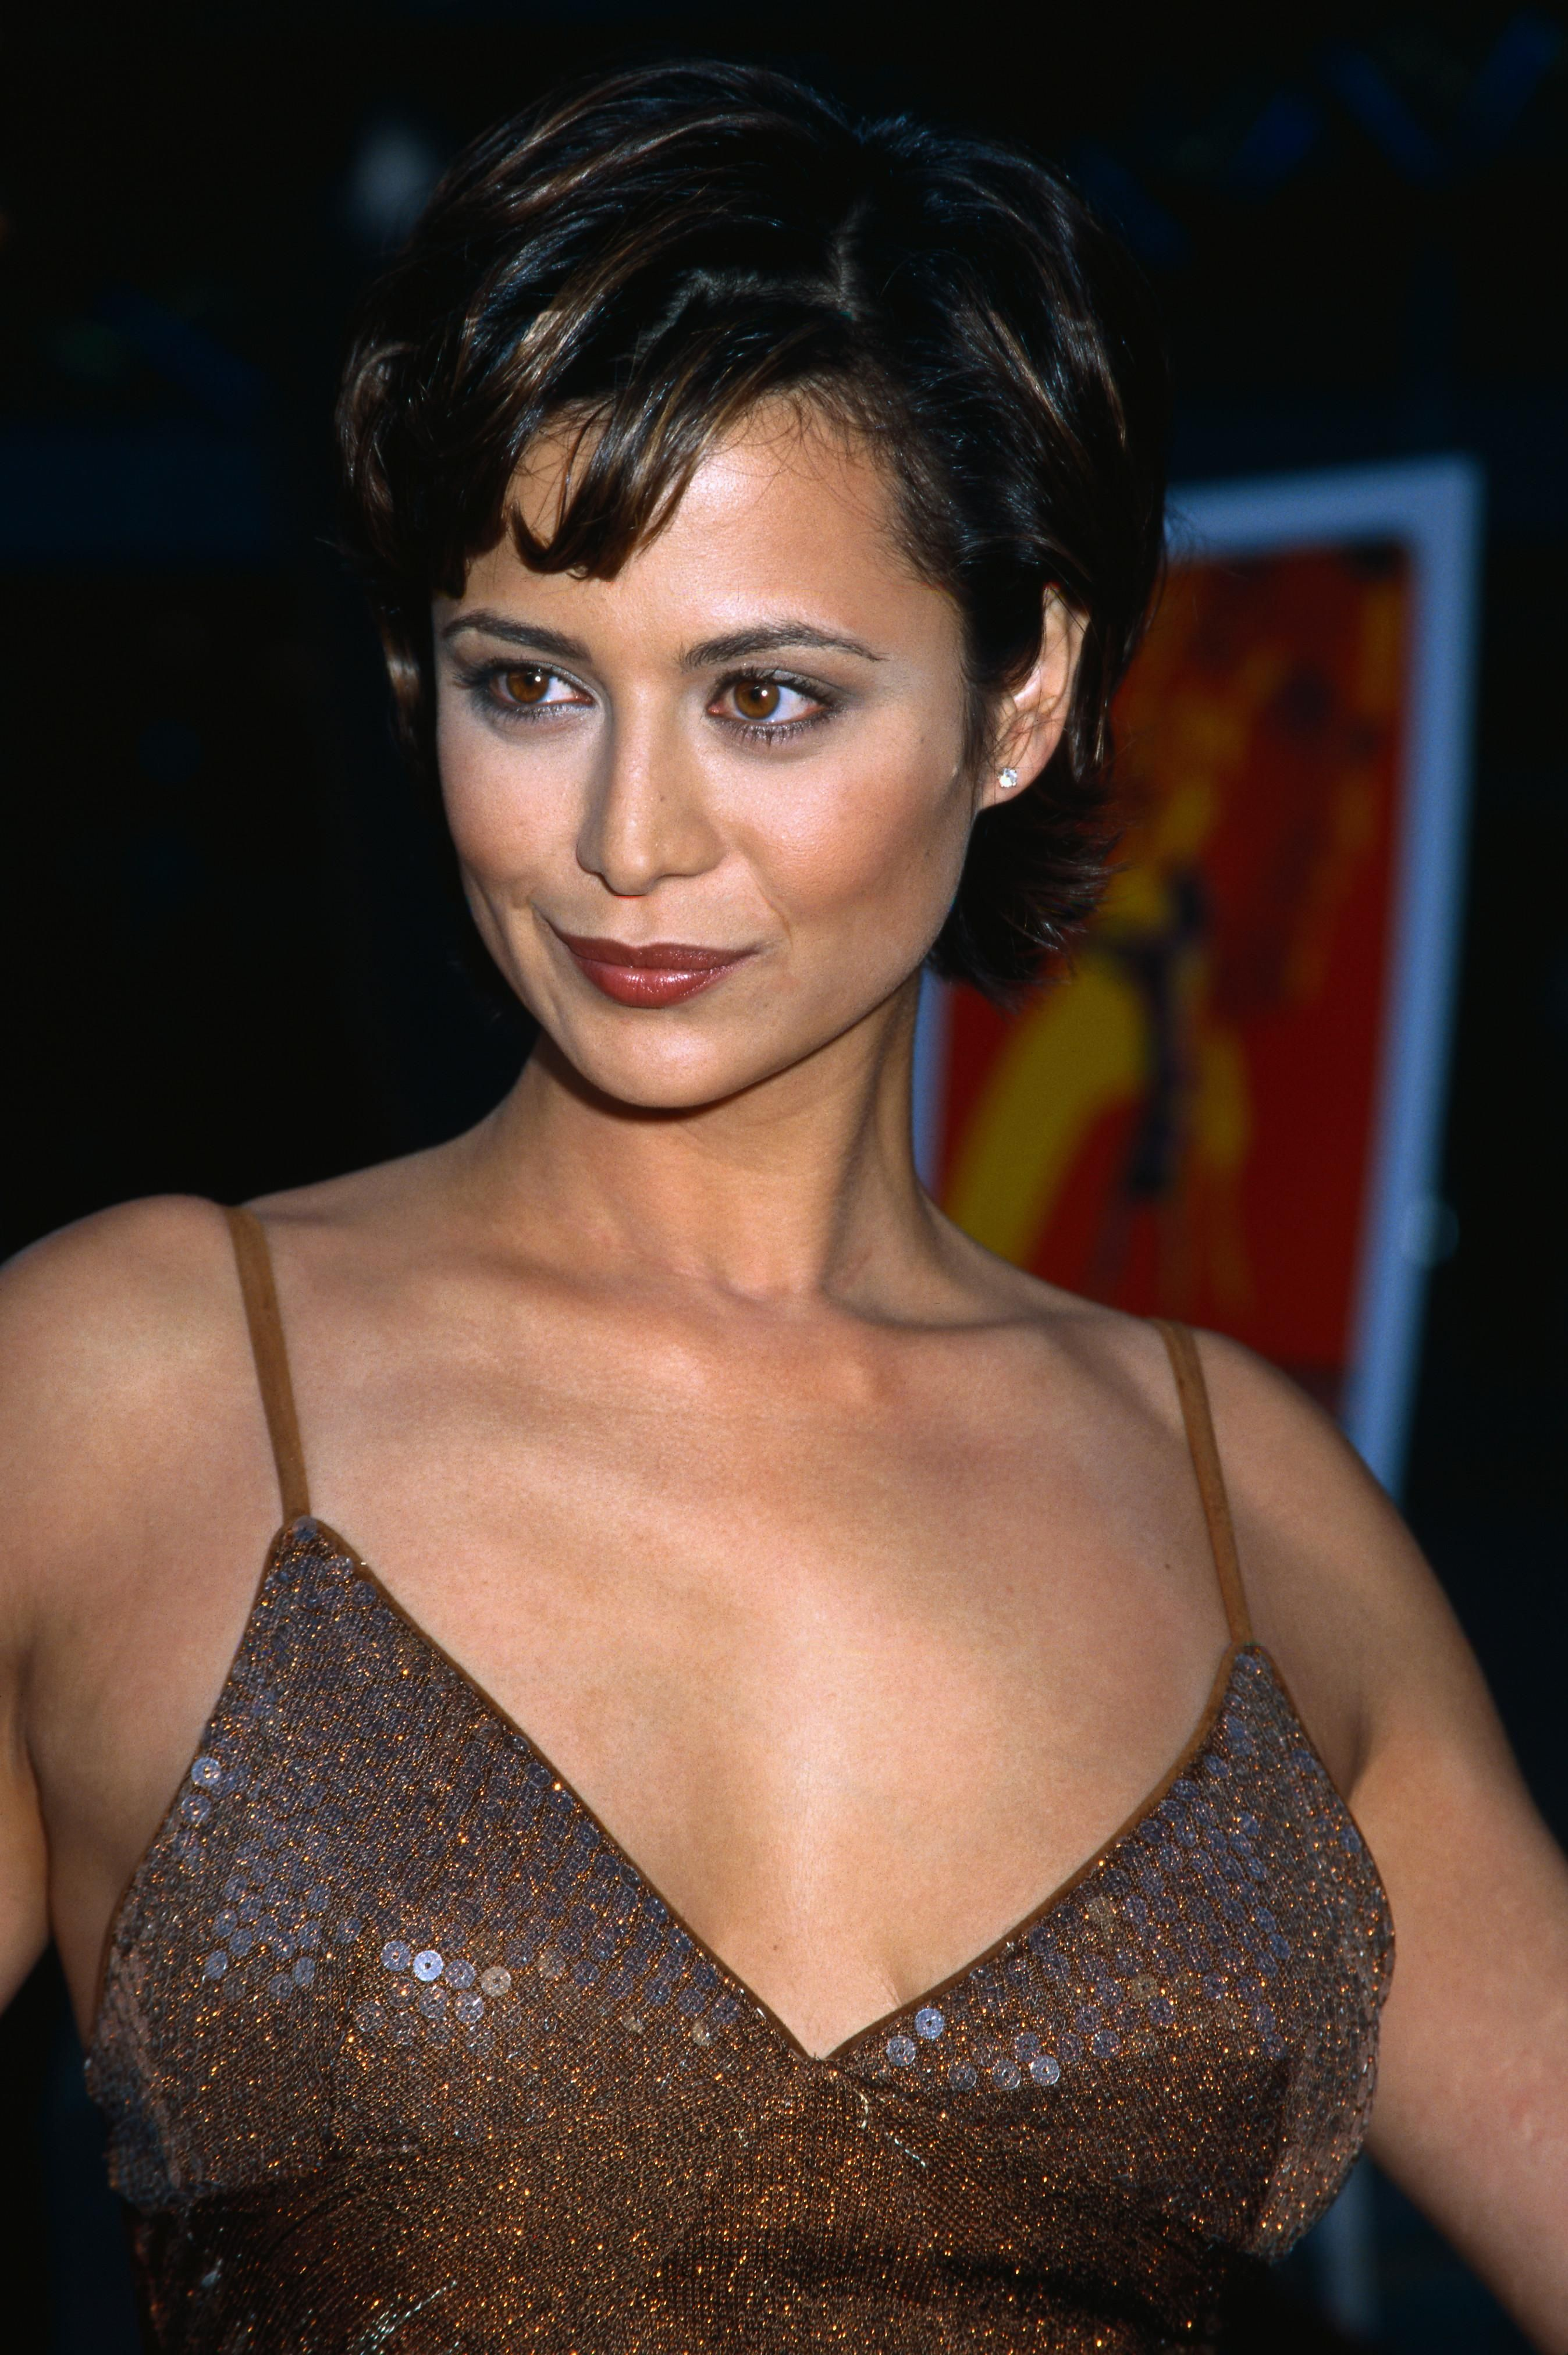 catherine bell facebook